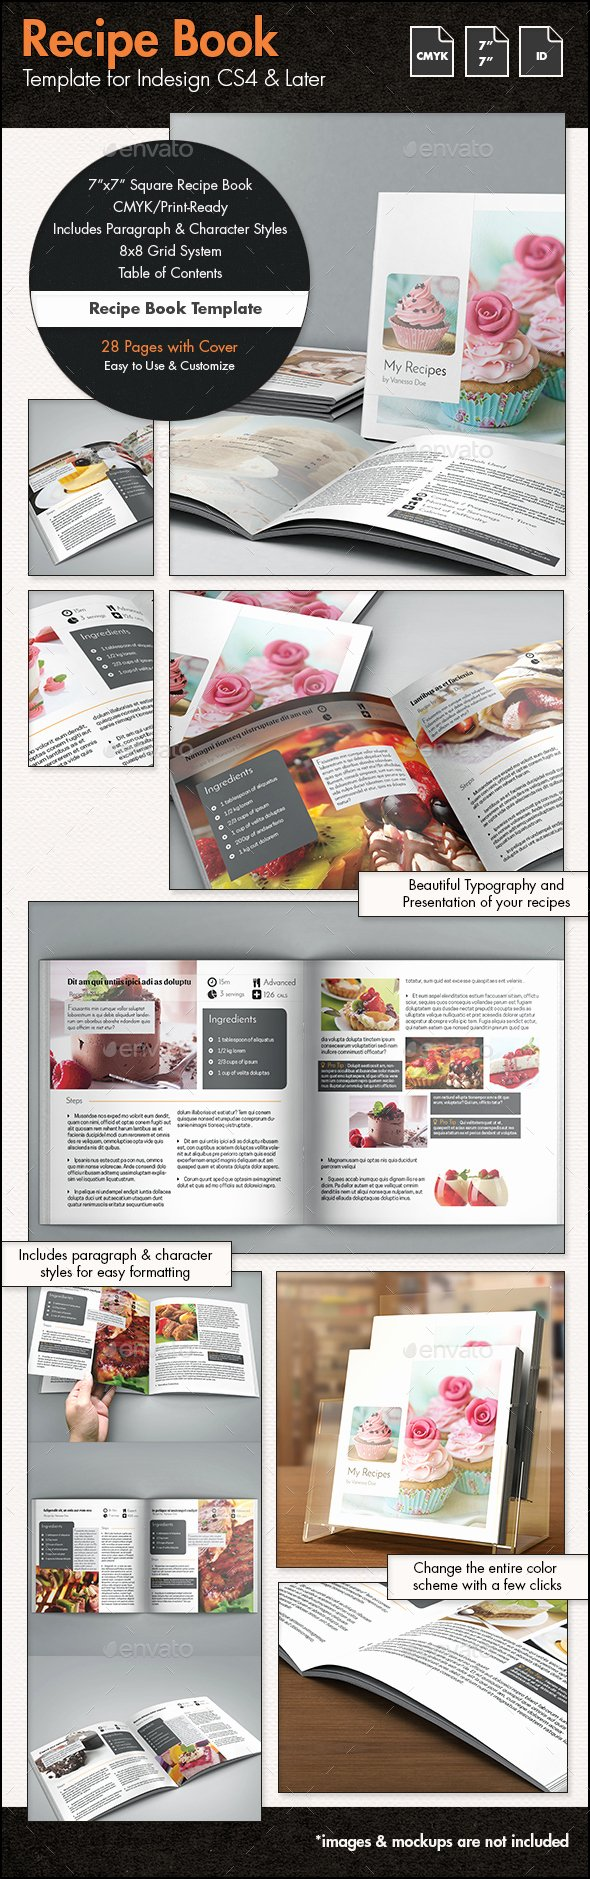 Recipe Book Template 7x7in by Sthalassinos